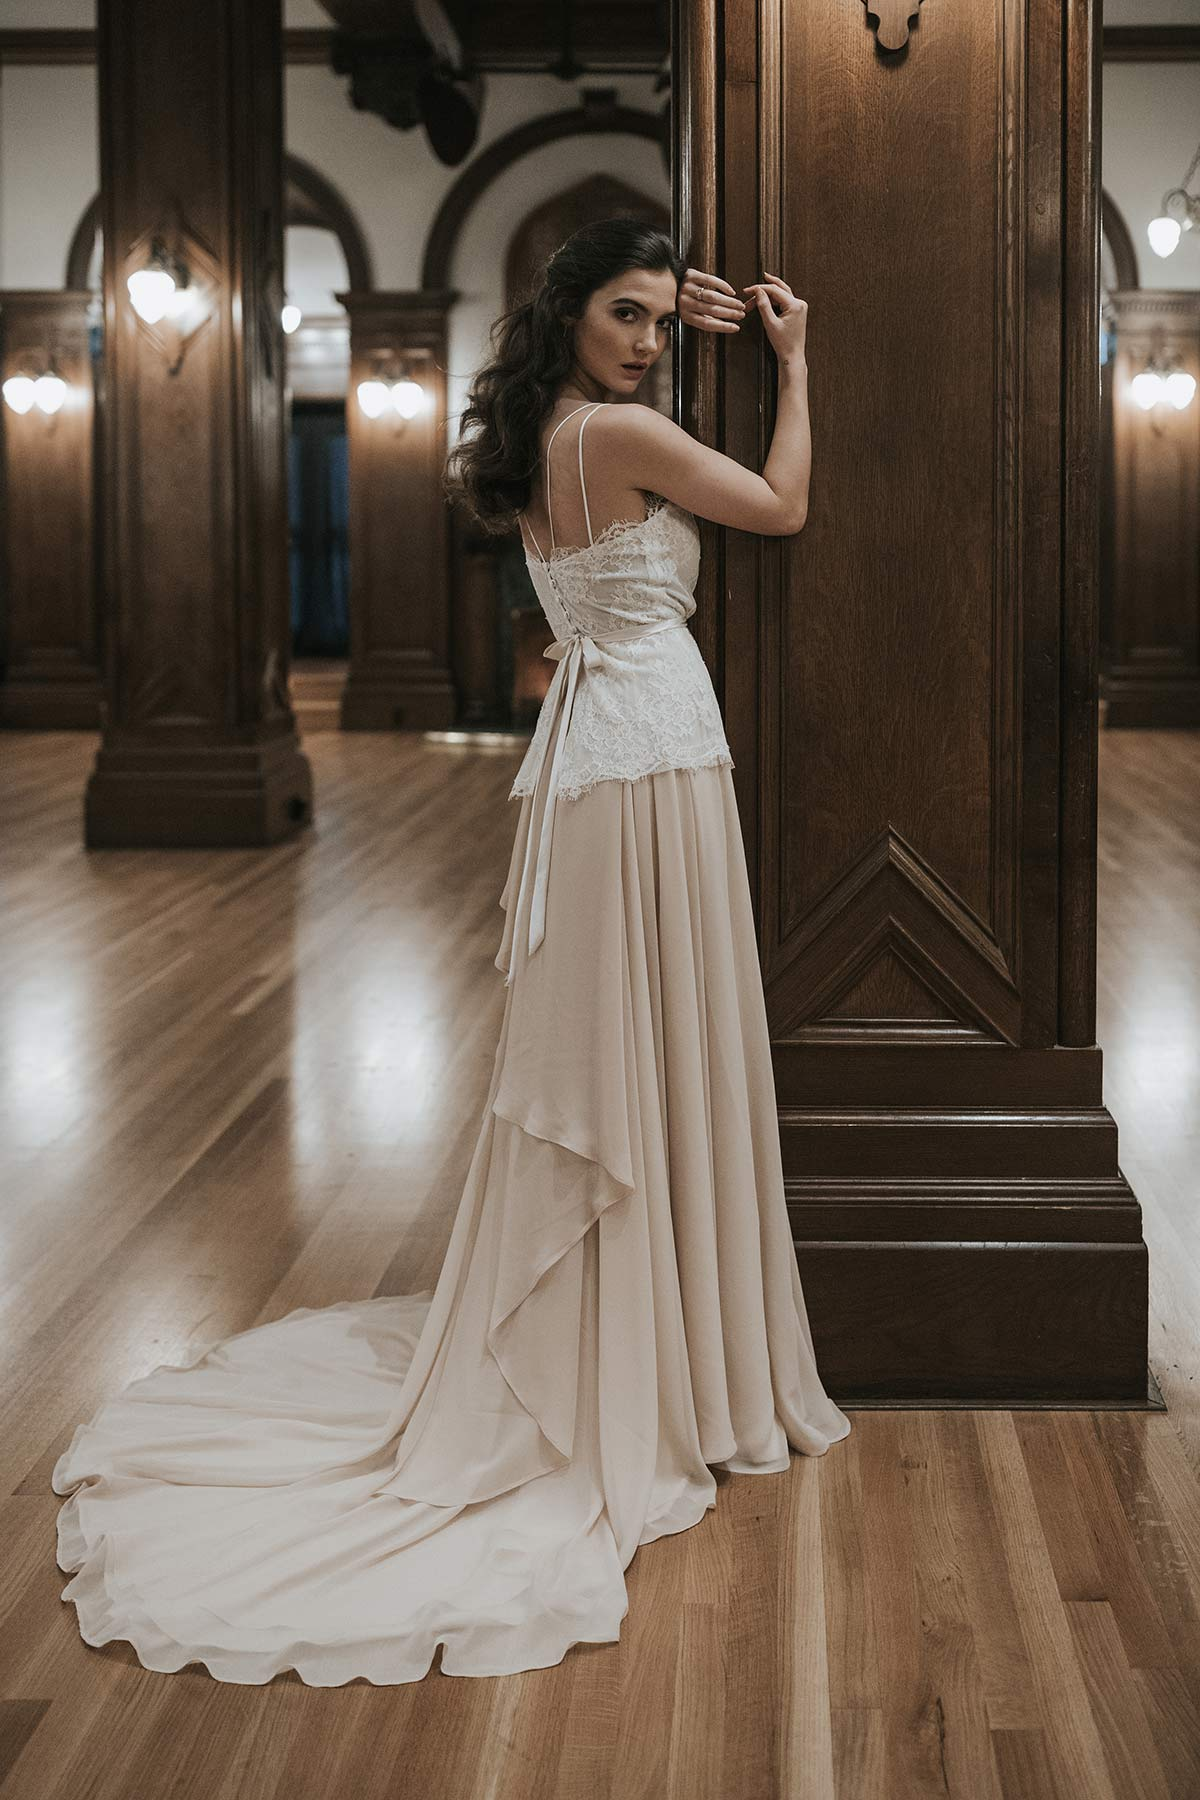 Lavictoire editorial Thetis wedding dress side lace and straps top and long train light nude skirt